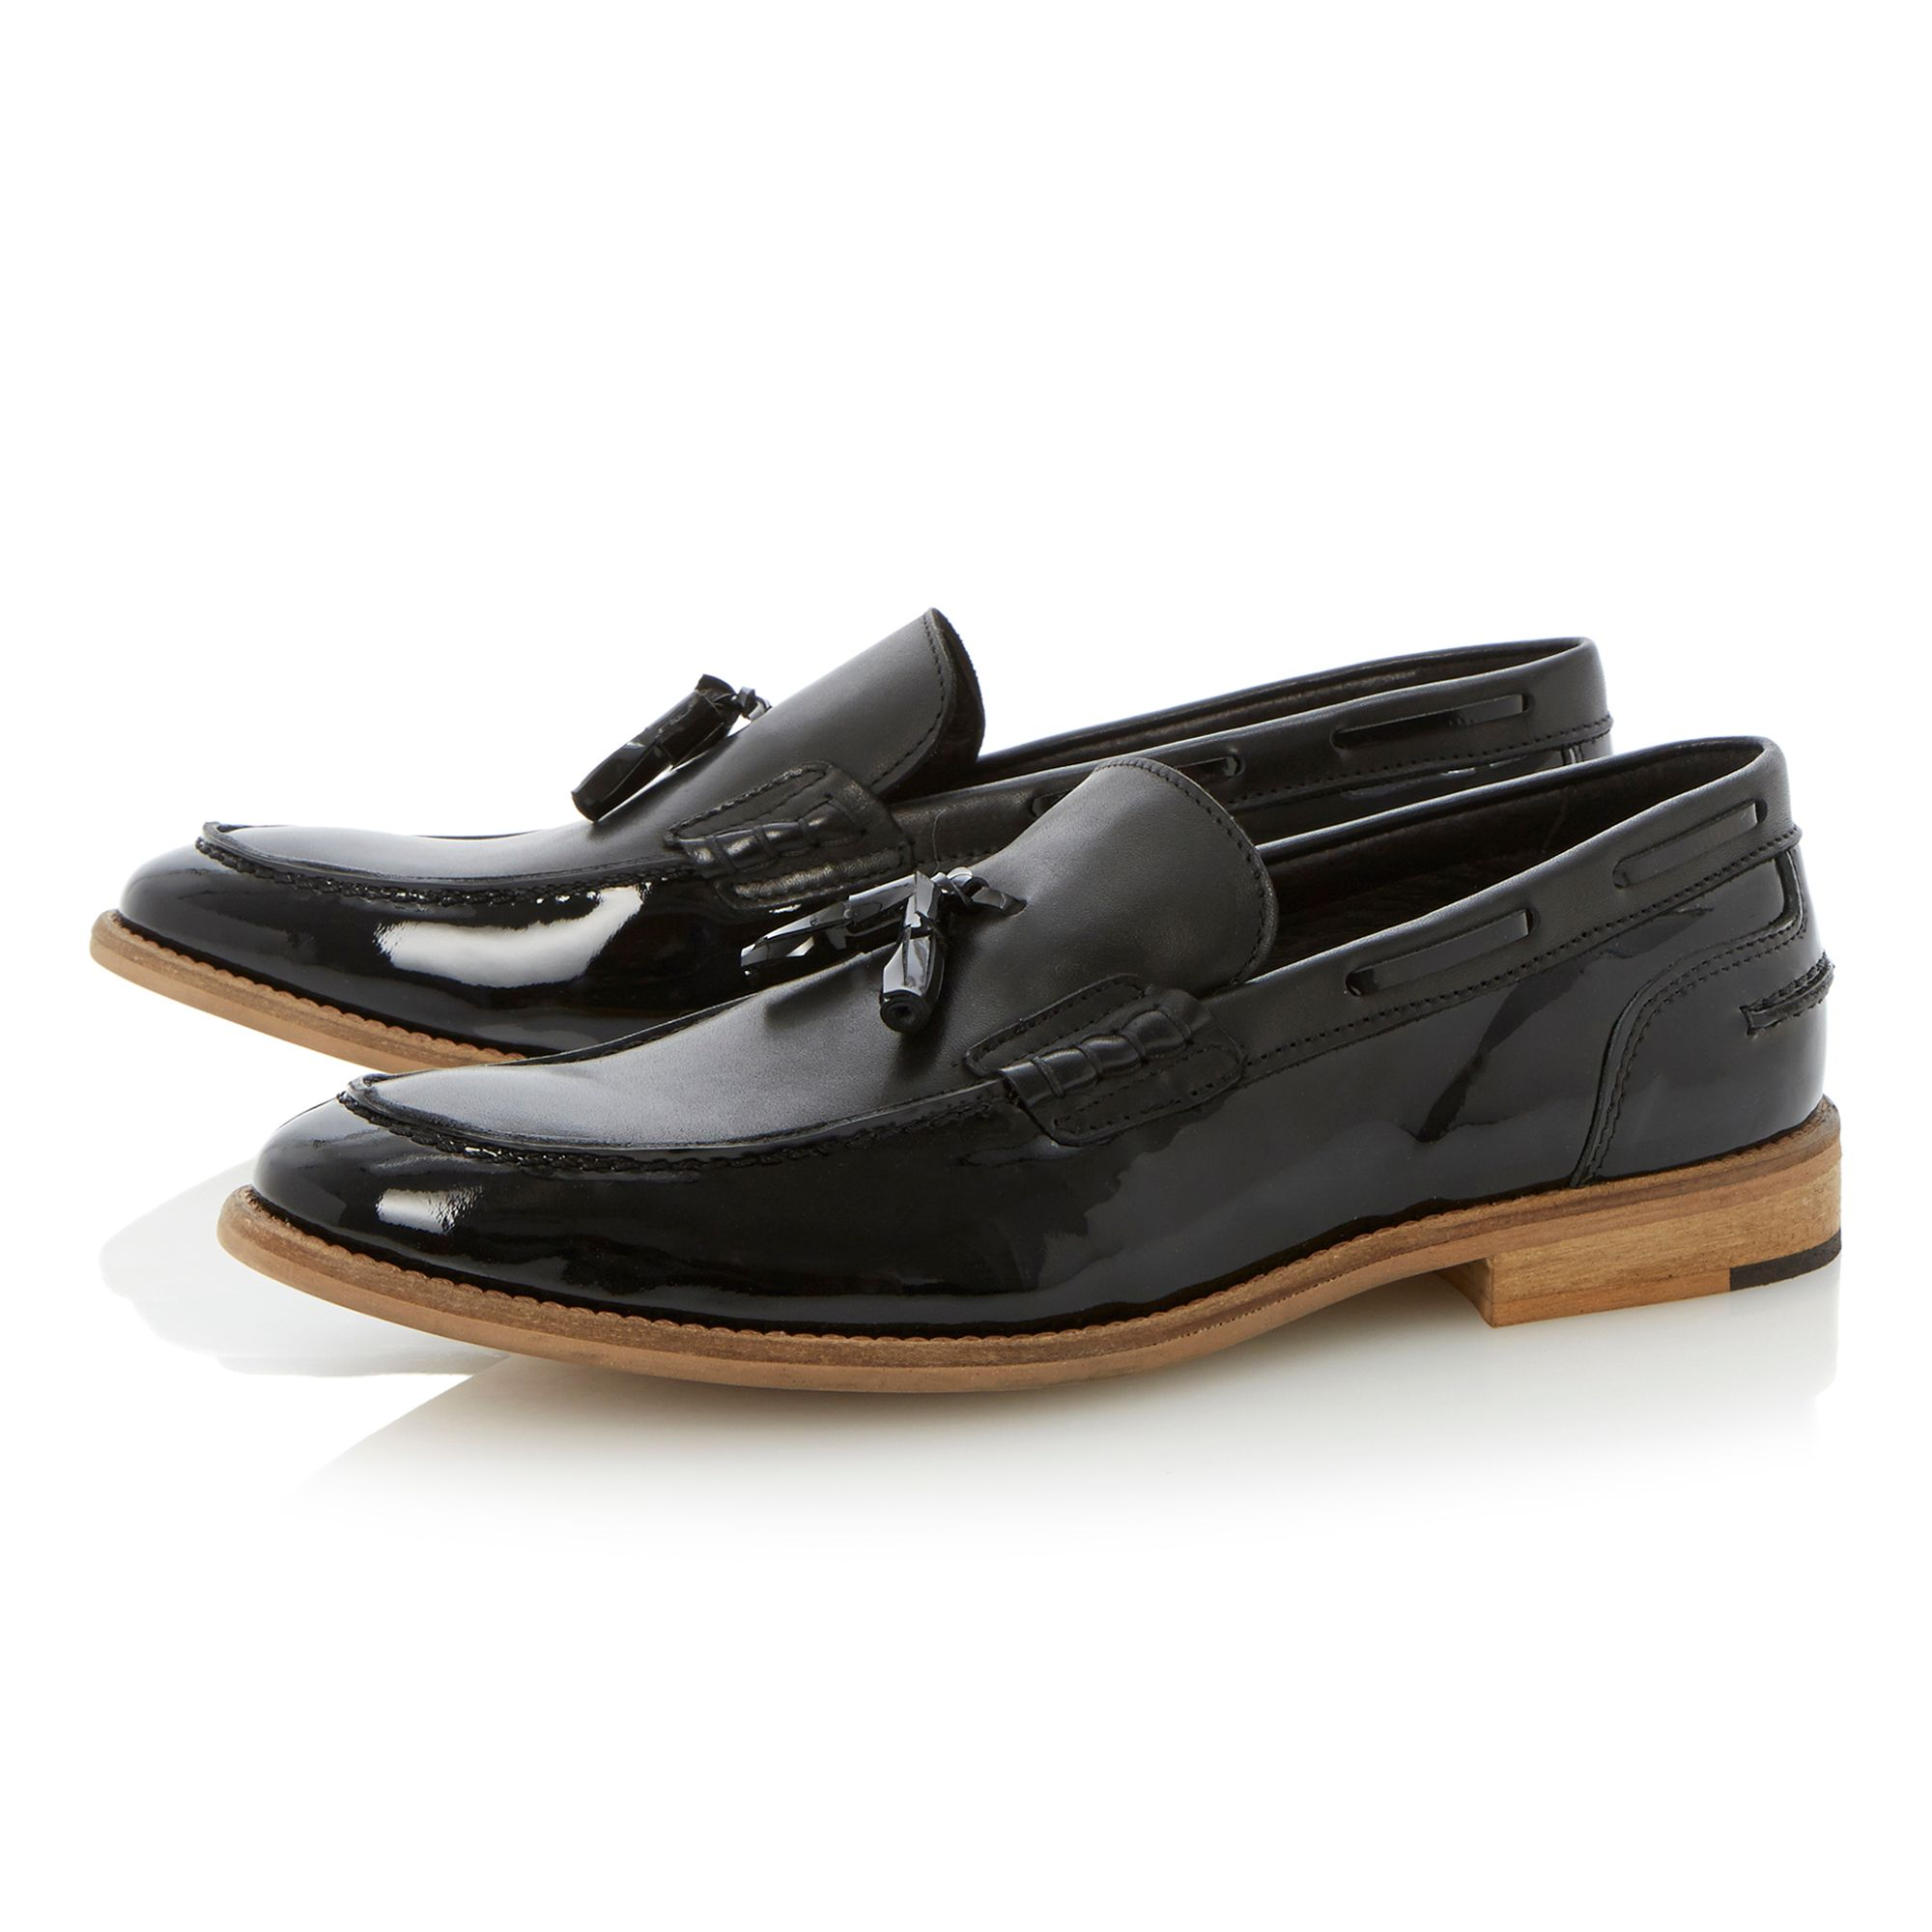 Astoria two tone tassel loafer